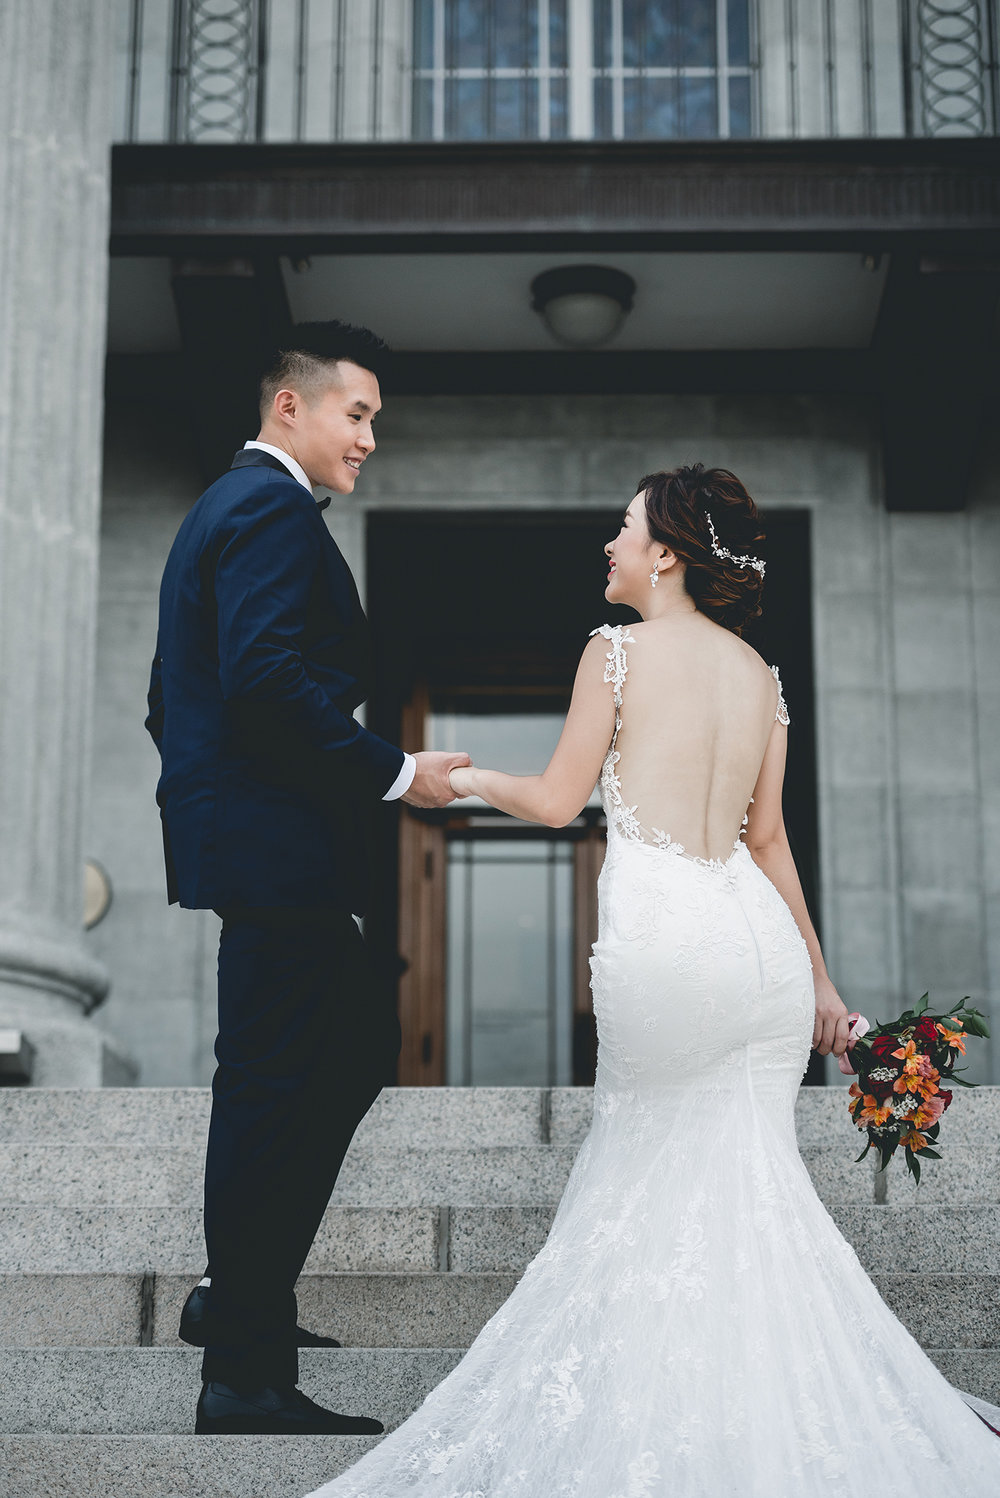 Singapore Prewedding 36.JPG